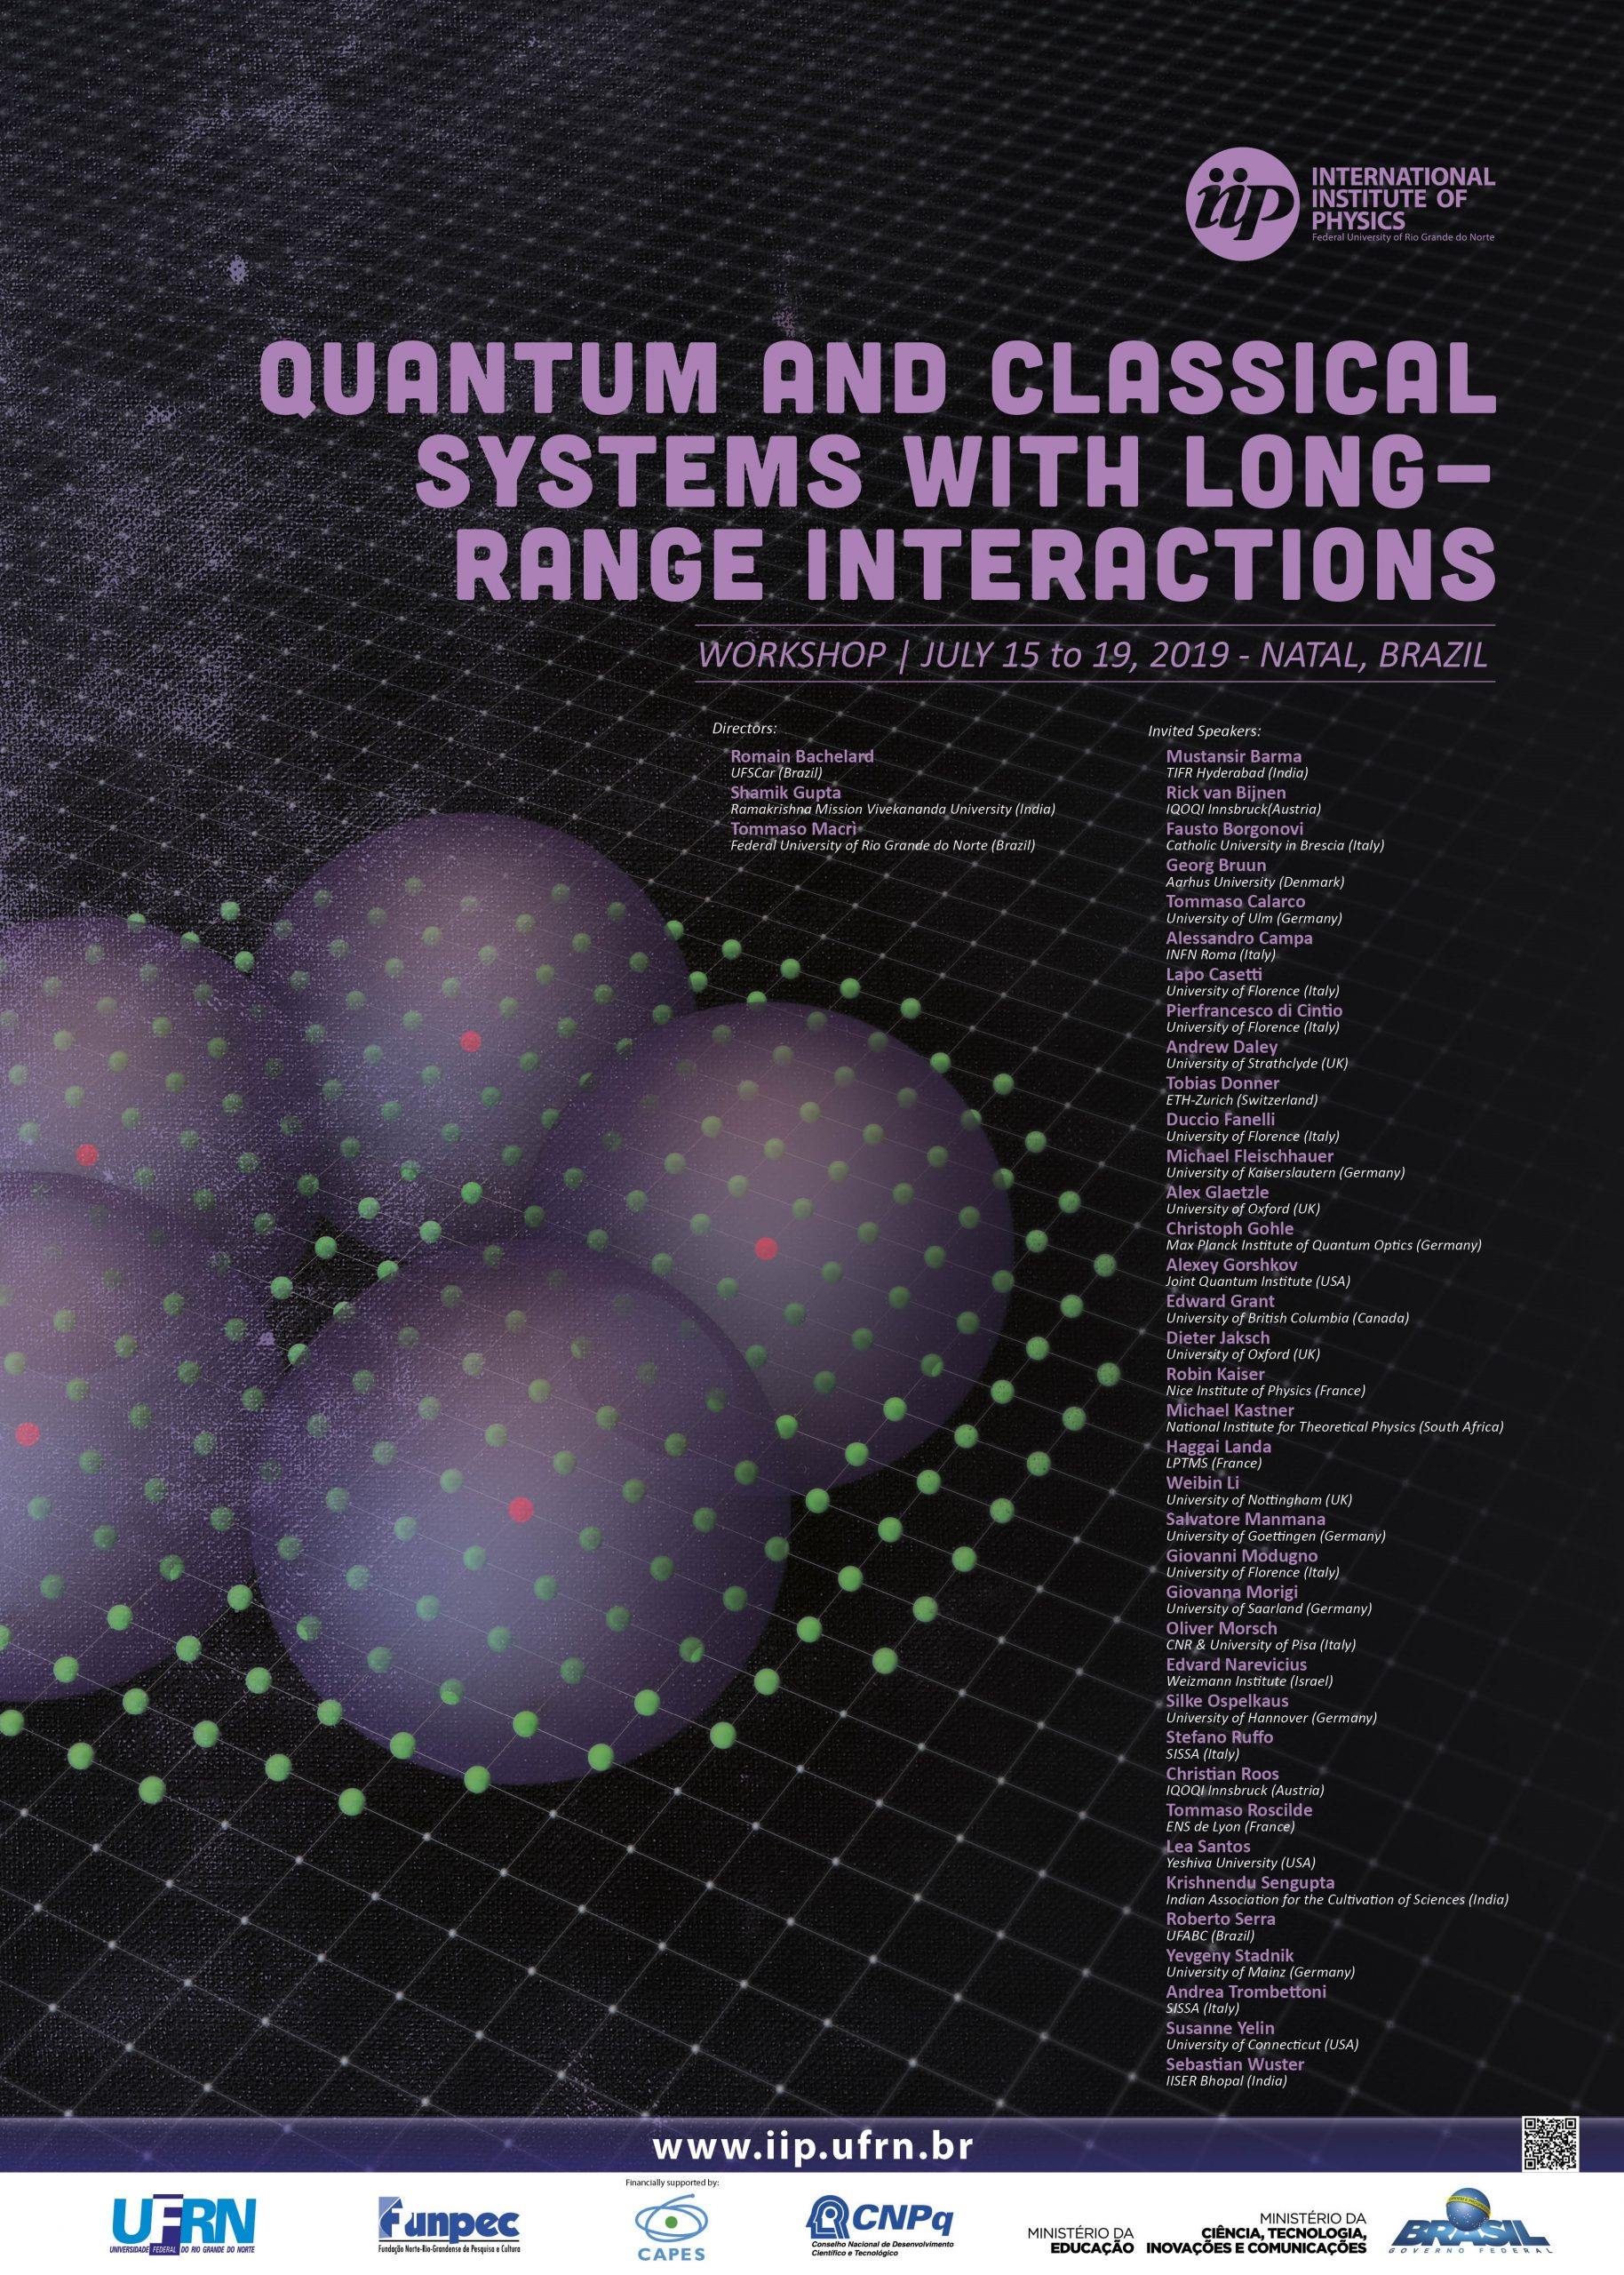 QUANTUM AND CLASSICAL SYSTEMS WITH LONG-RANGE INTERACTIONS